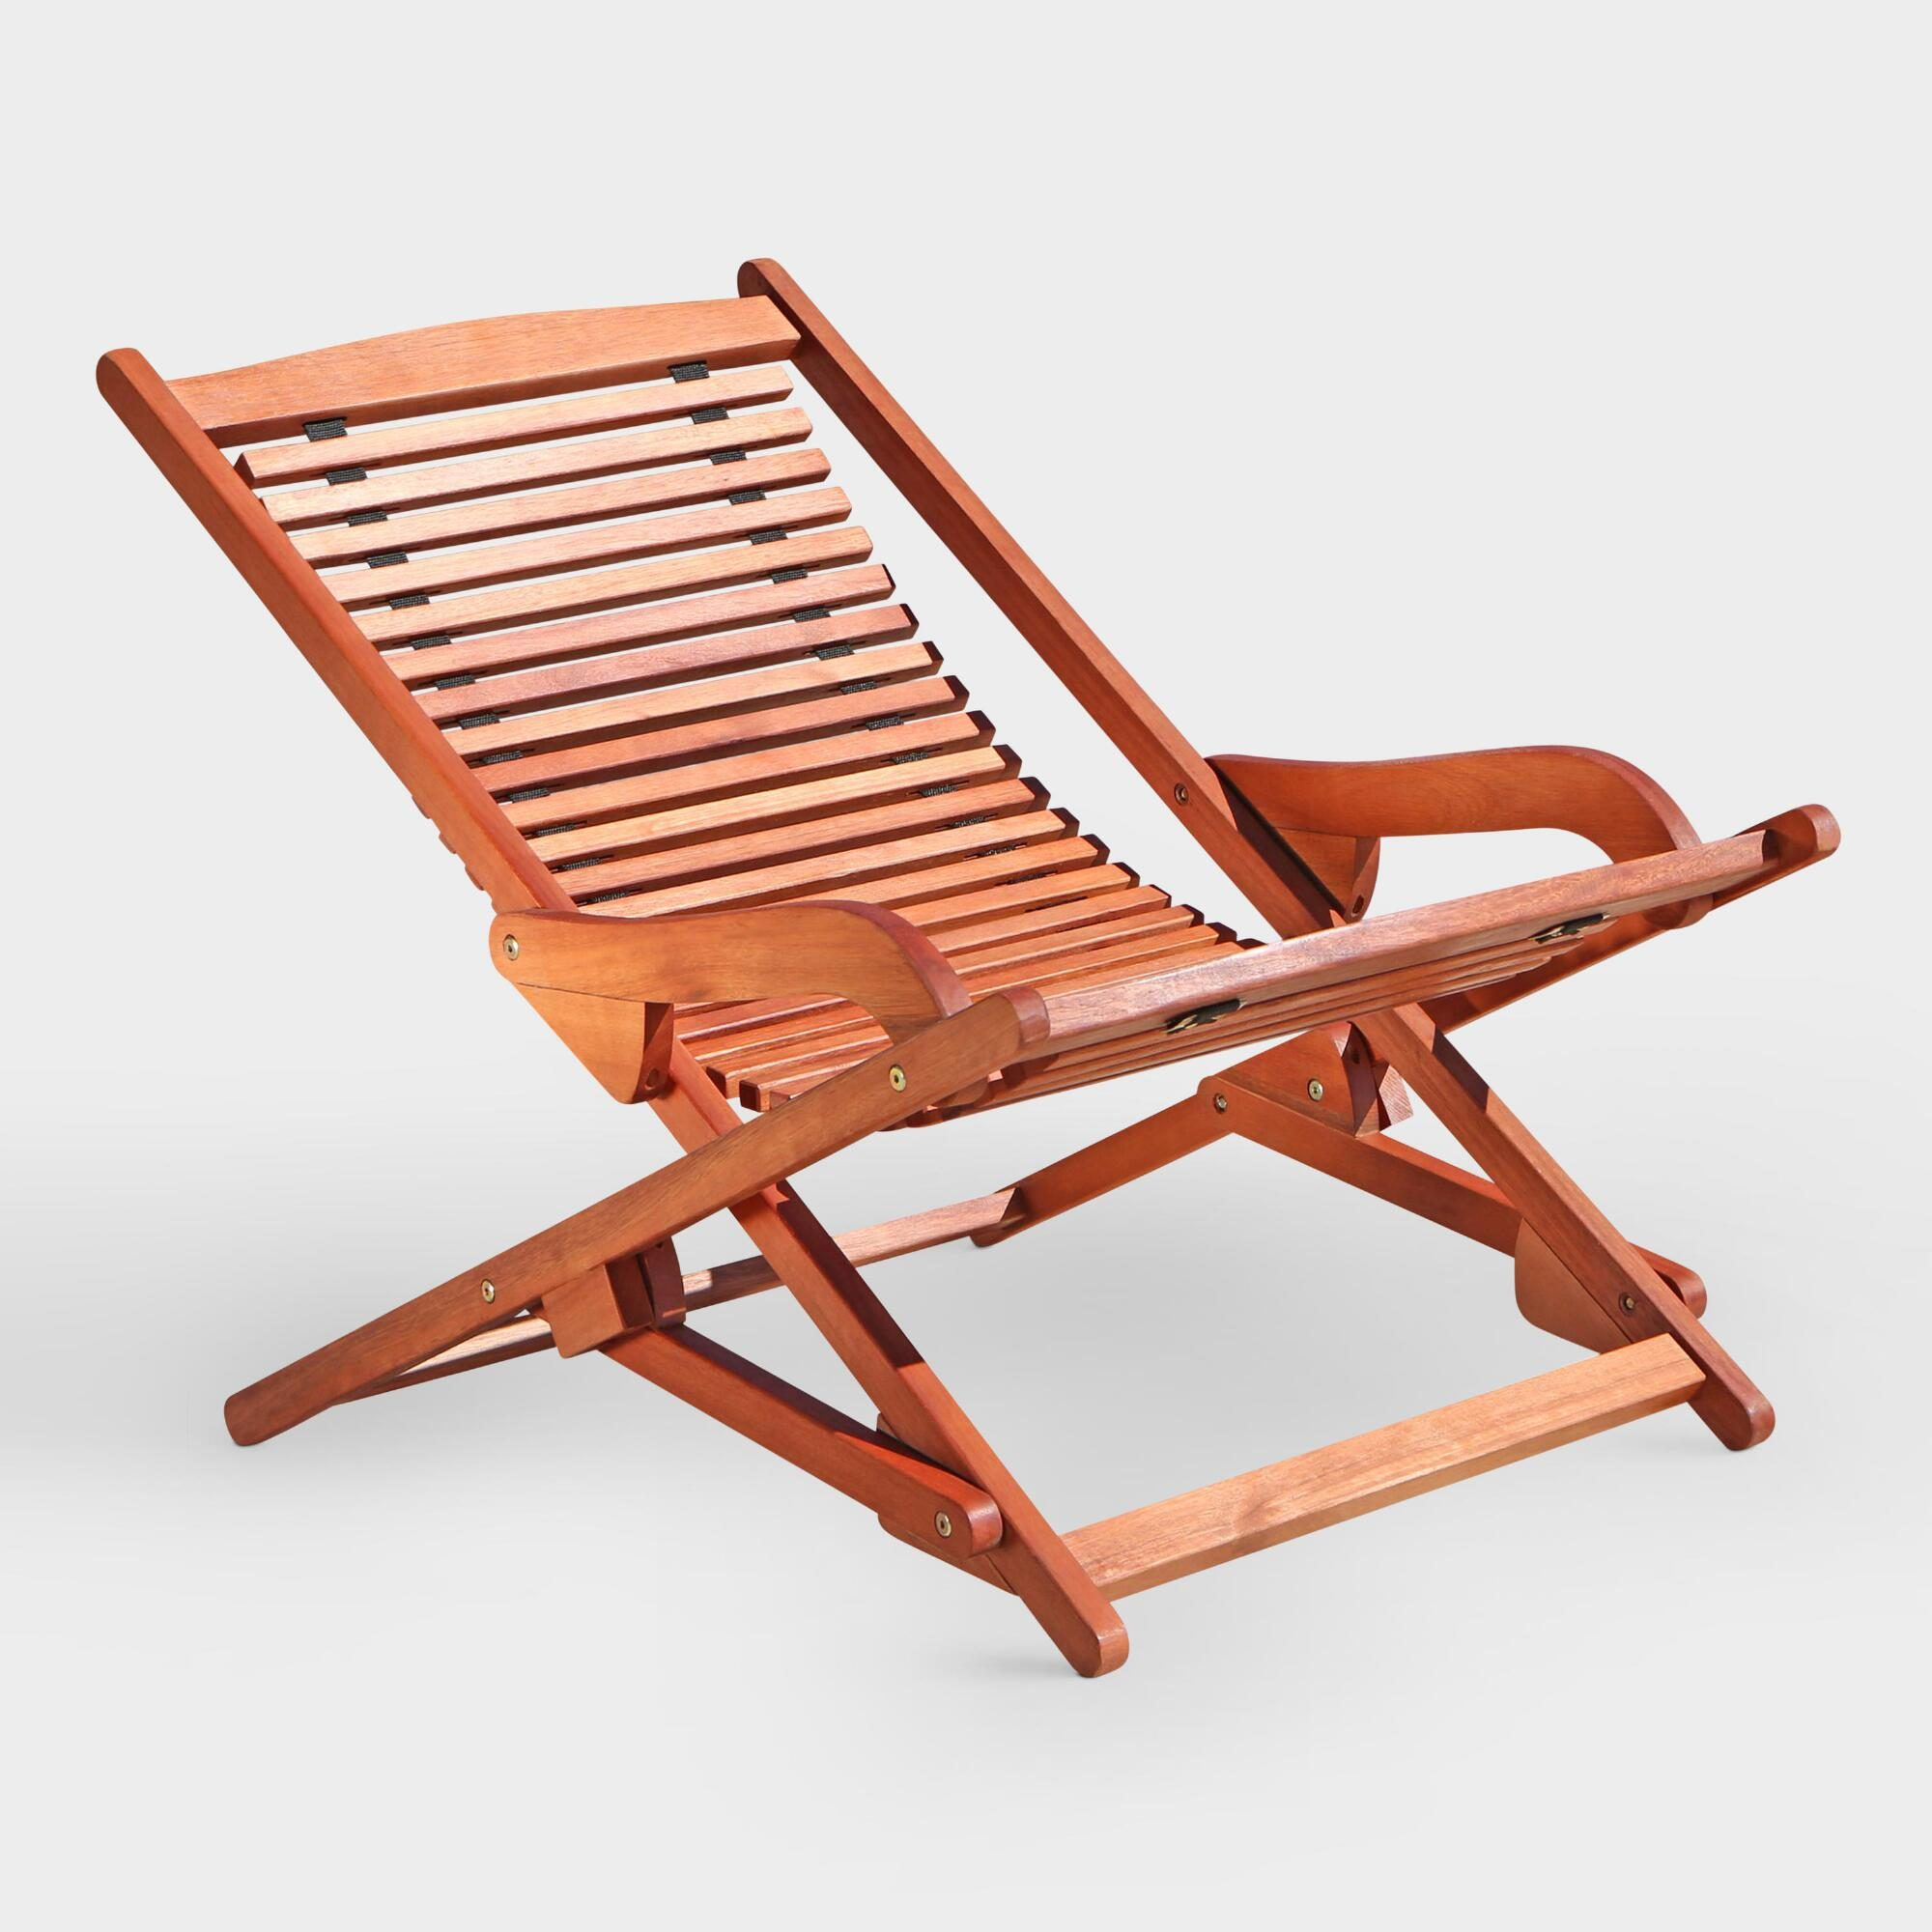 Patio Folding Chaise Lounge: Natural - Wood by World Market